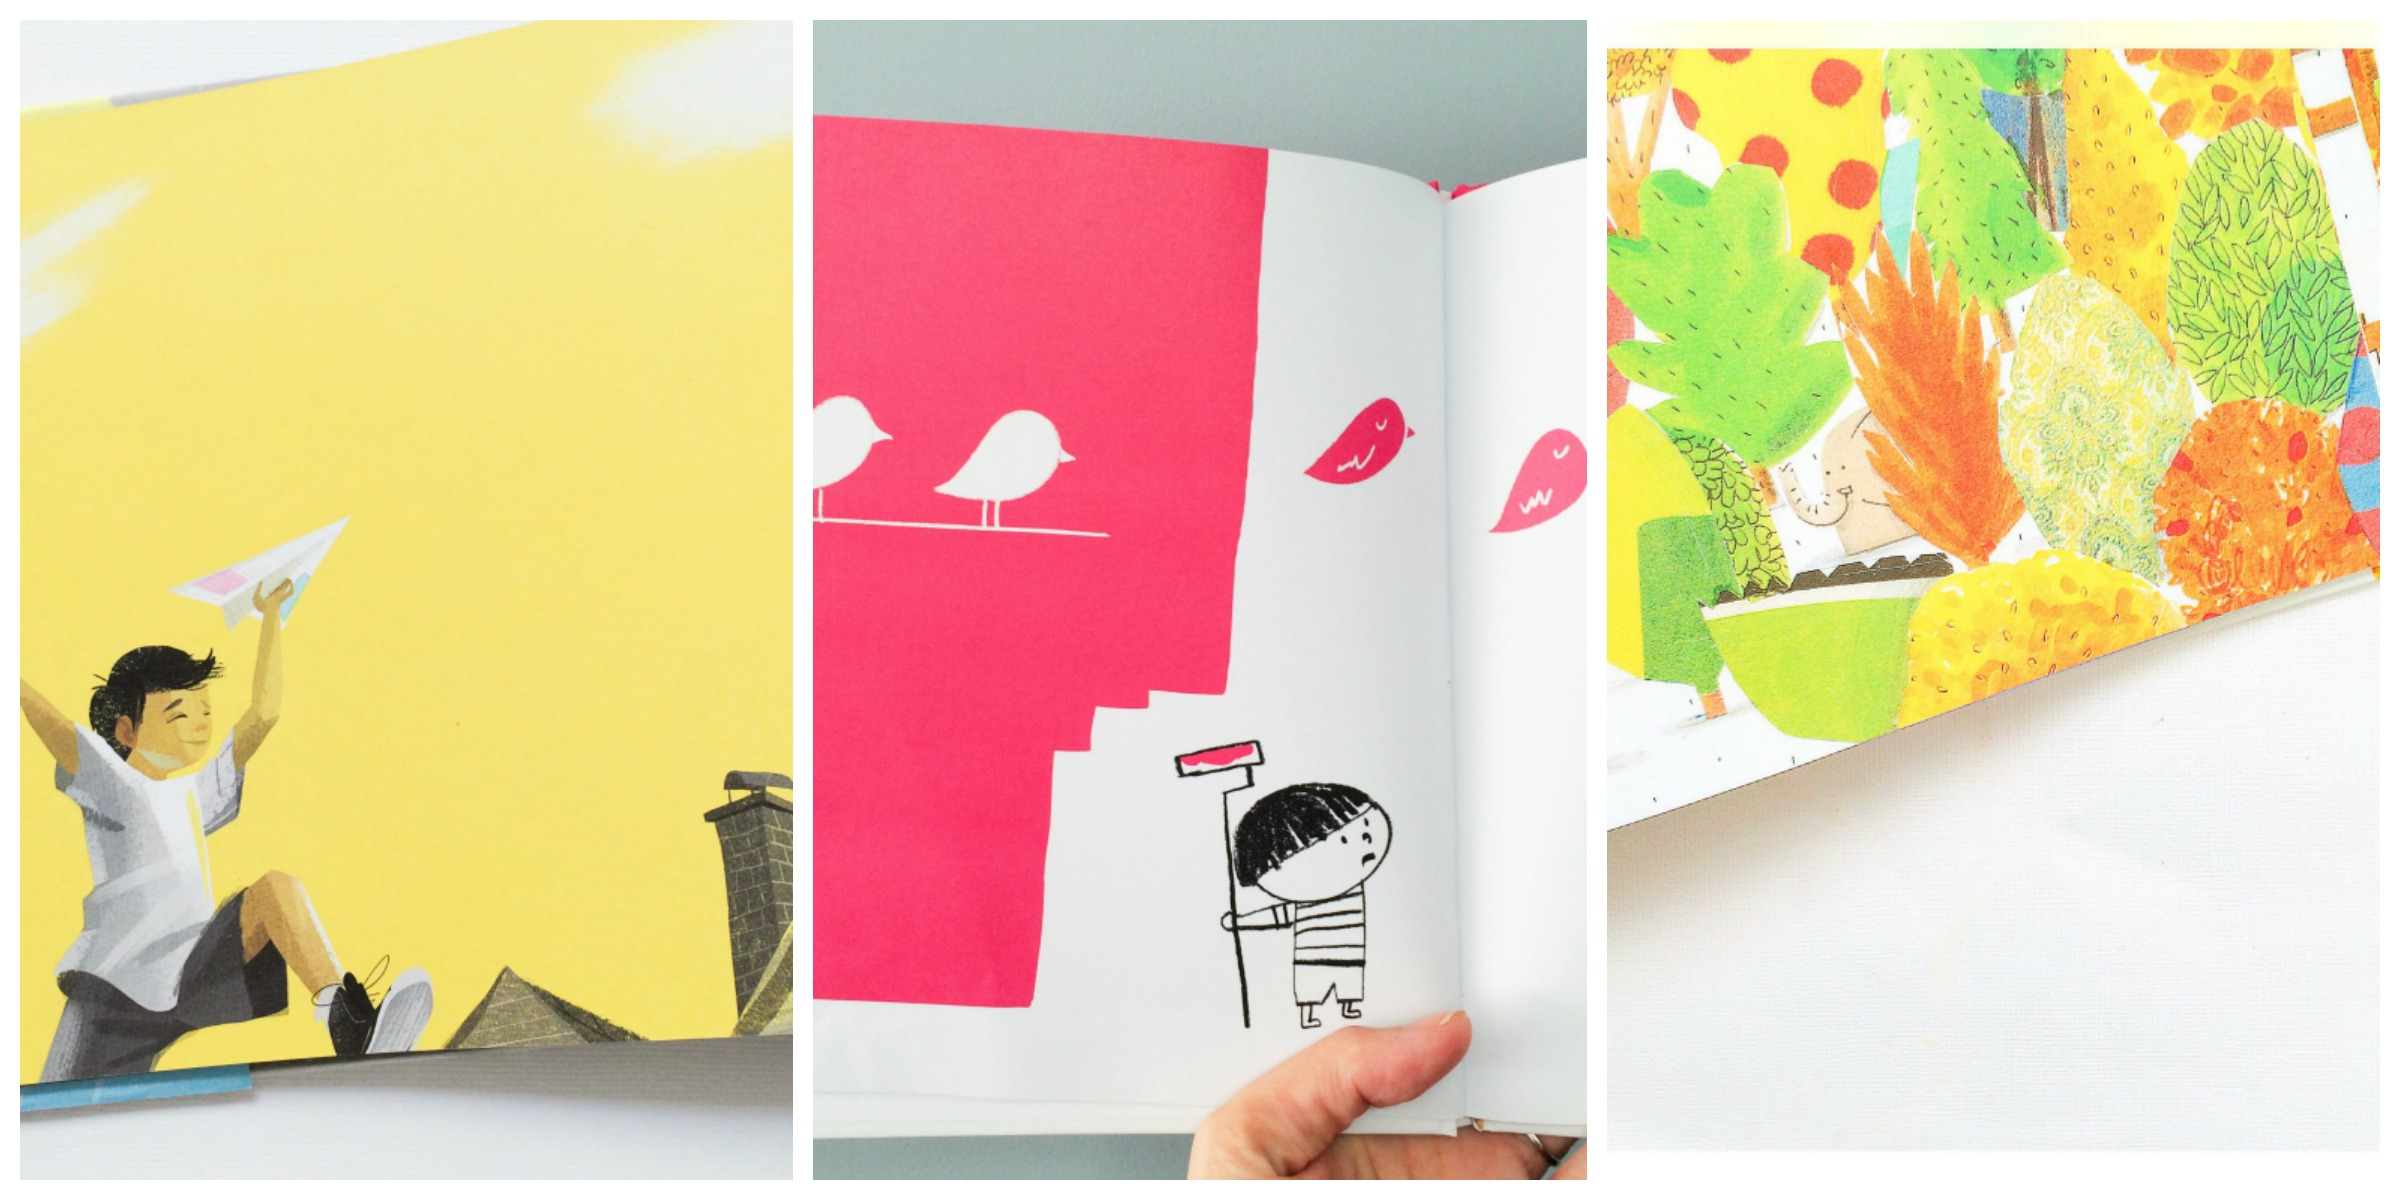 http://www.hellowonderful.co/post/9-WONDERFUL-WORDLESS-PICTURE-BOOKS-THAT-INSPIRE-IMAGINATION-IN-KIDS